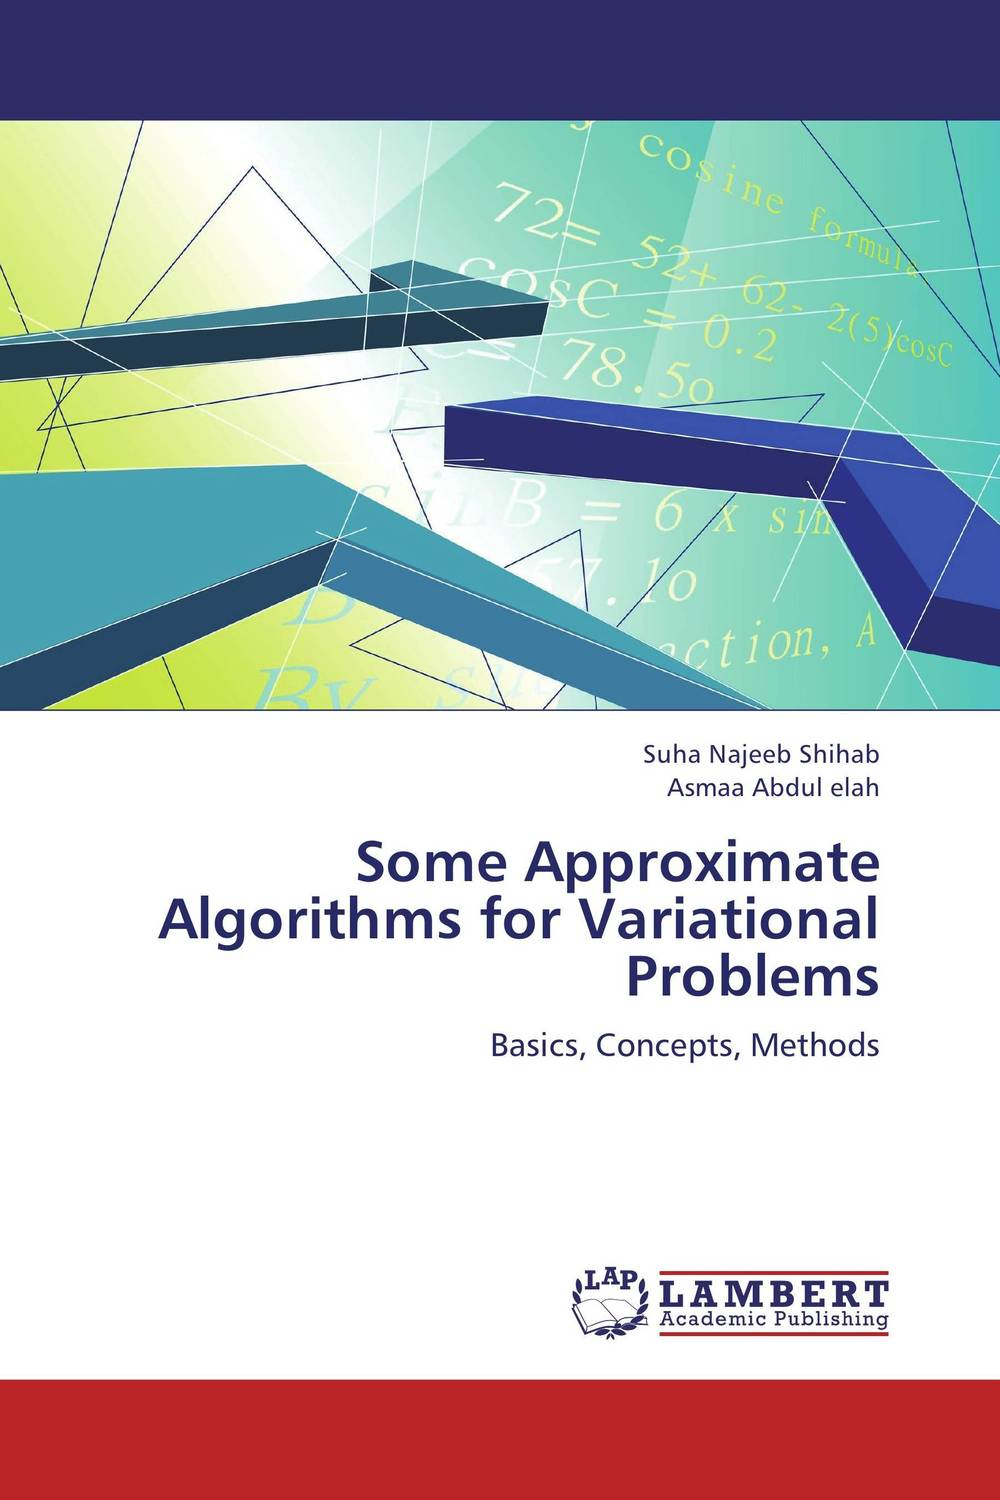 Some Approximate Algorithms for Variational Problems the application of wavelets methods in stefan problem